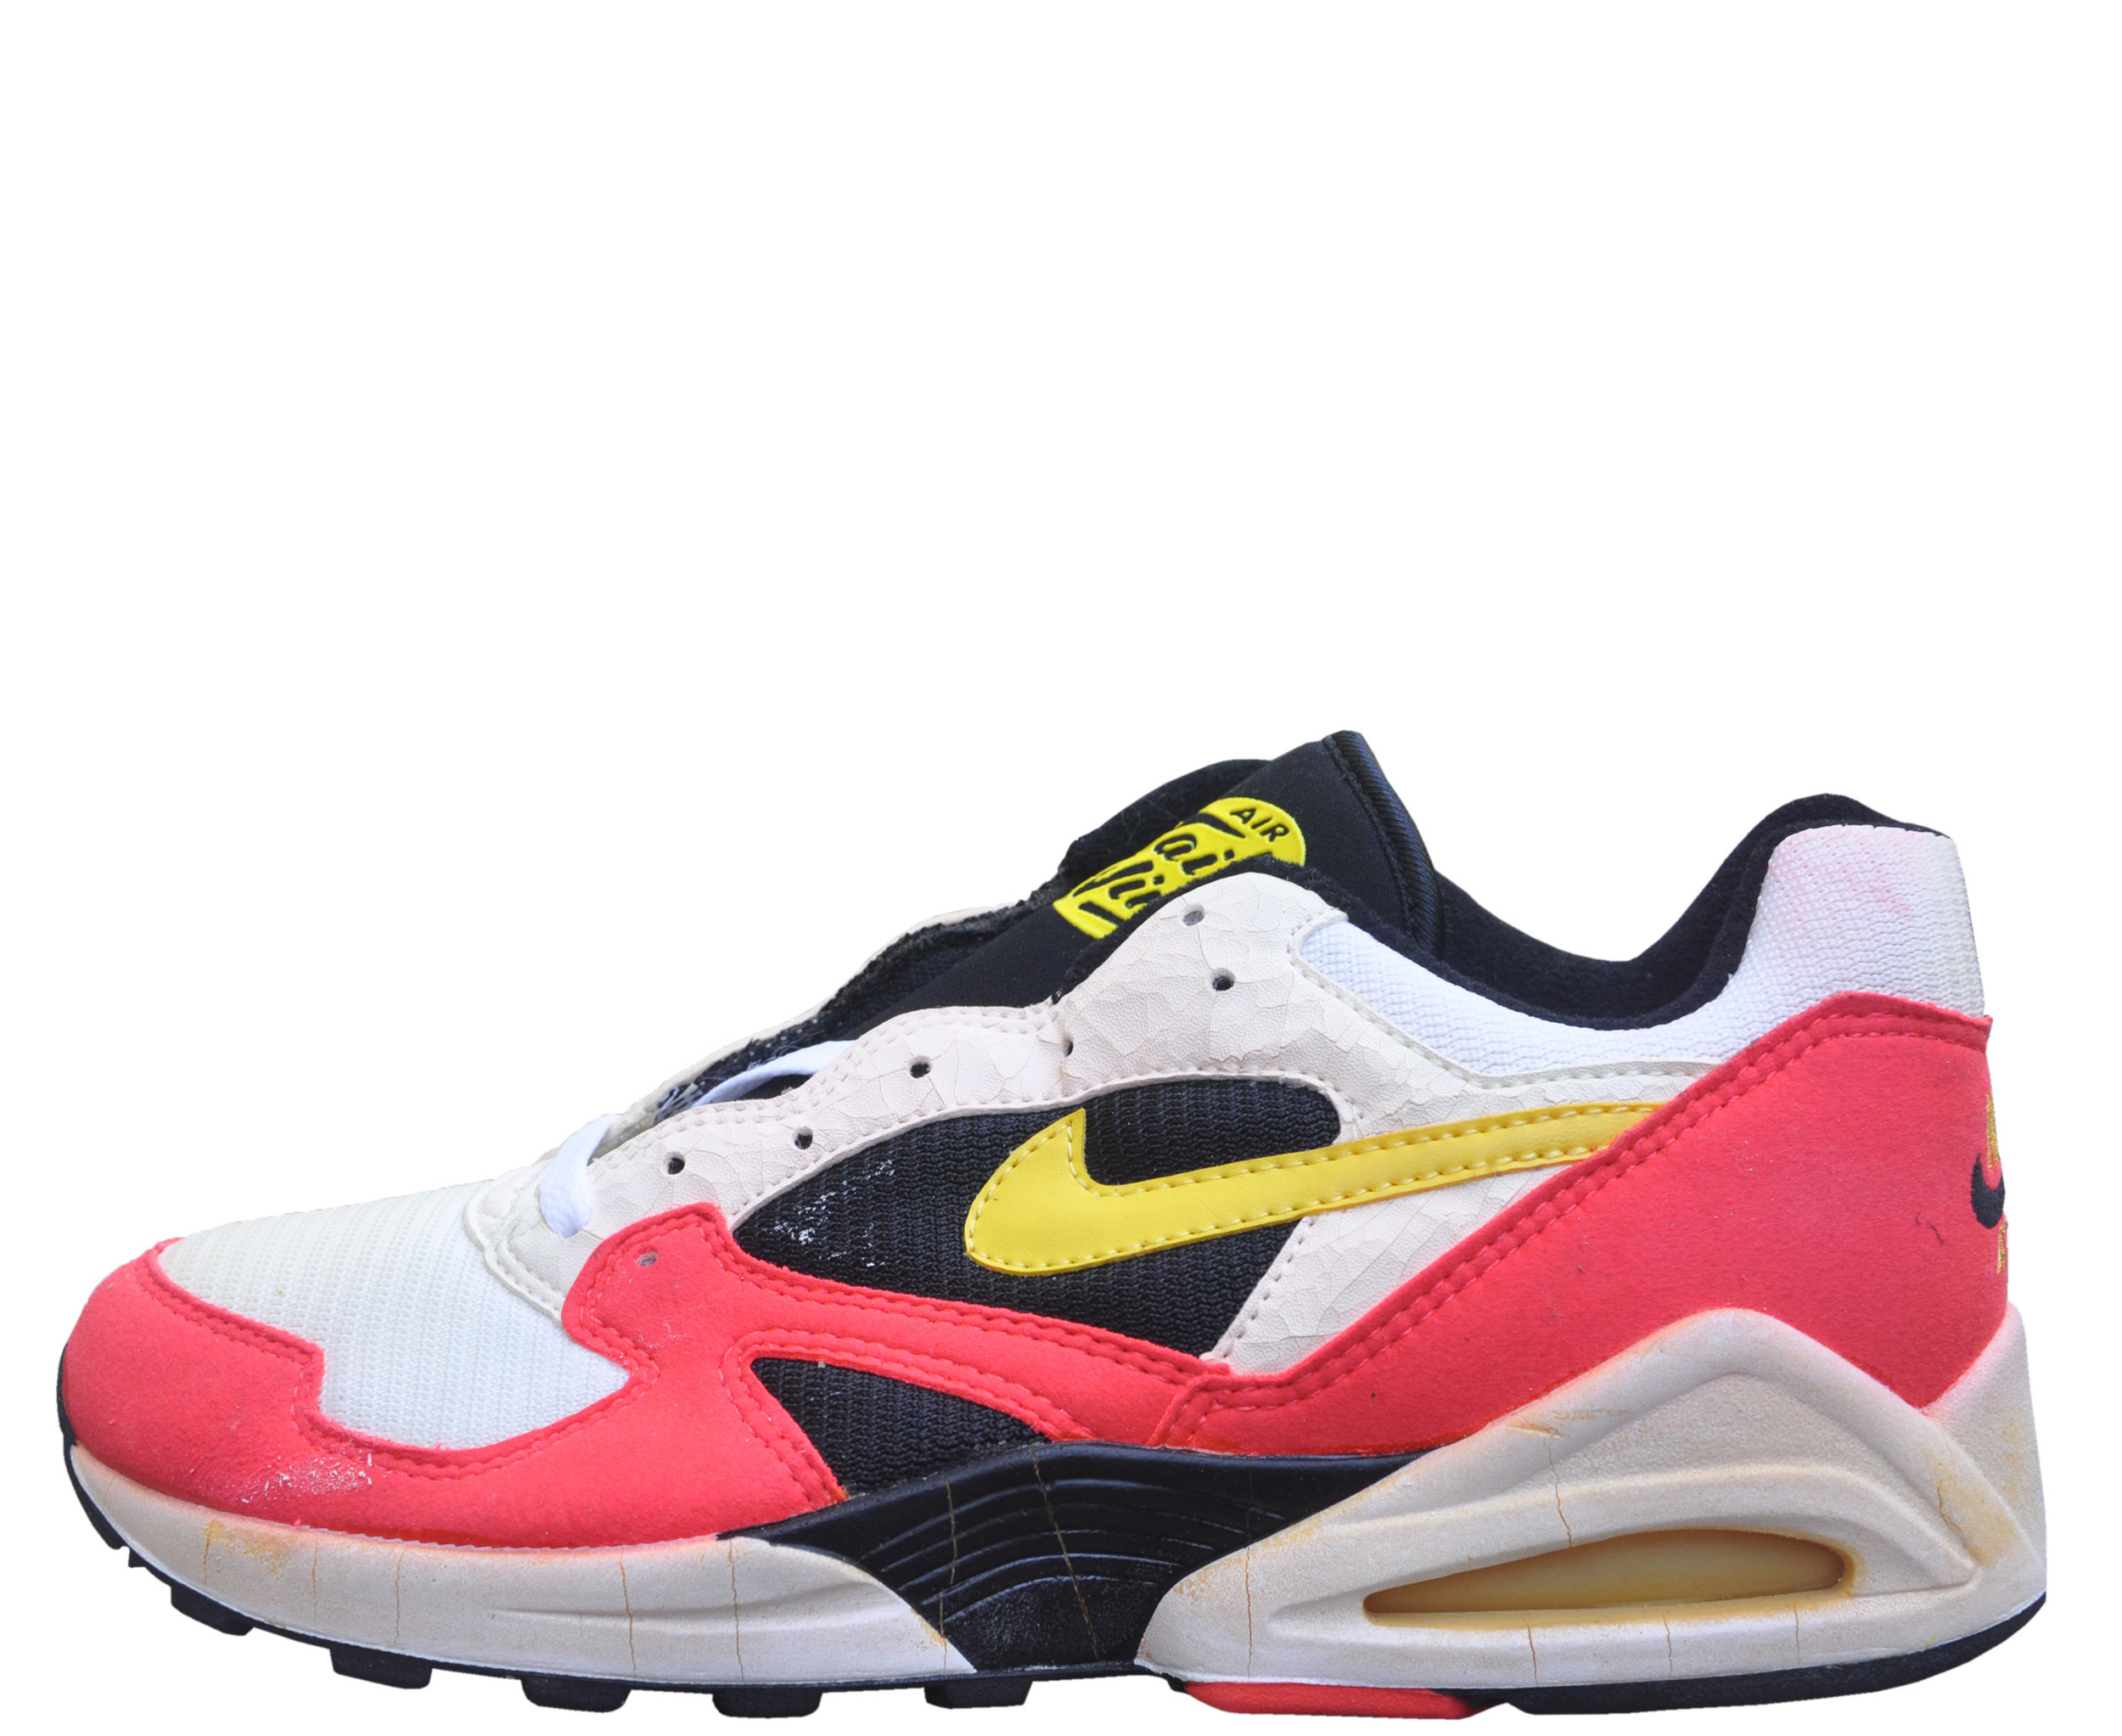 wholesale dealer 7c333 eb16c Nike Air Max Tailwind 92 White / Yellow Crimson (Size 9.5) DS — Roots